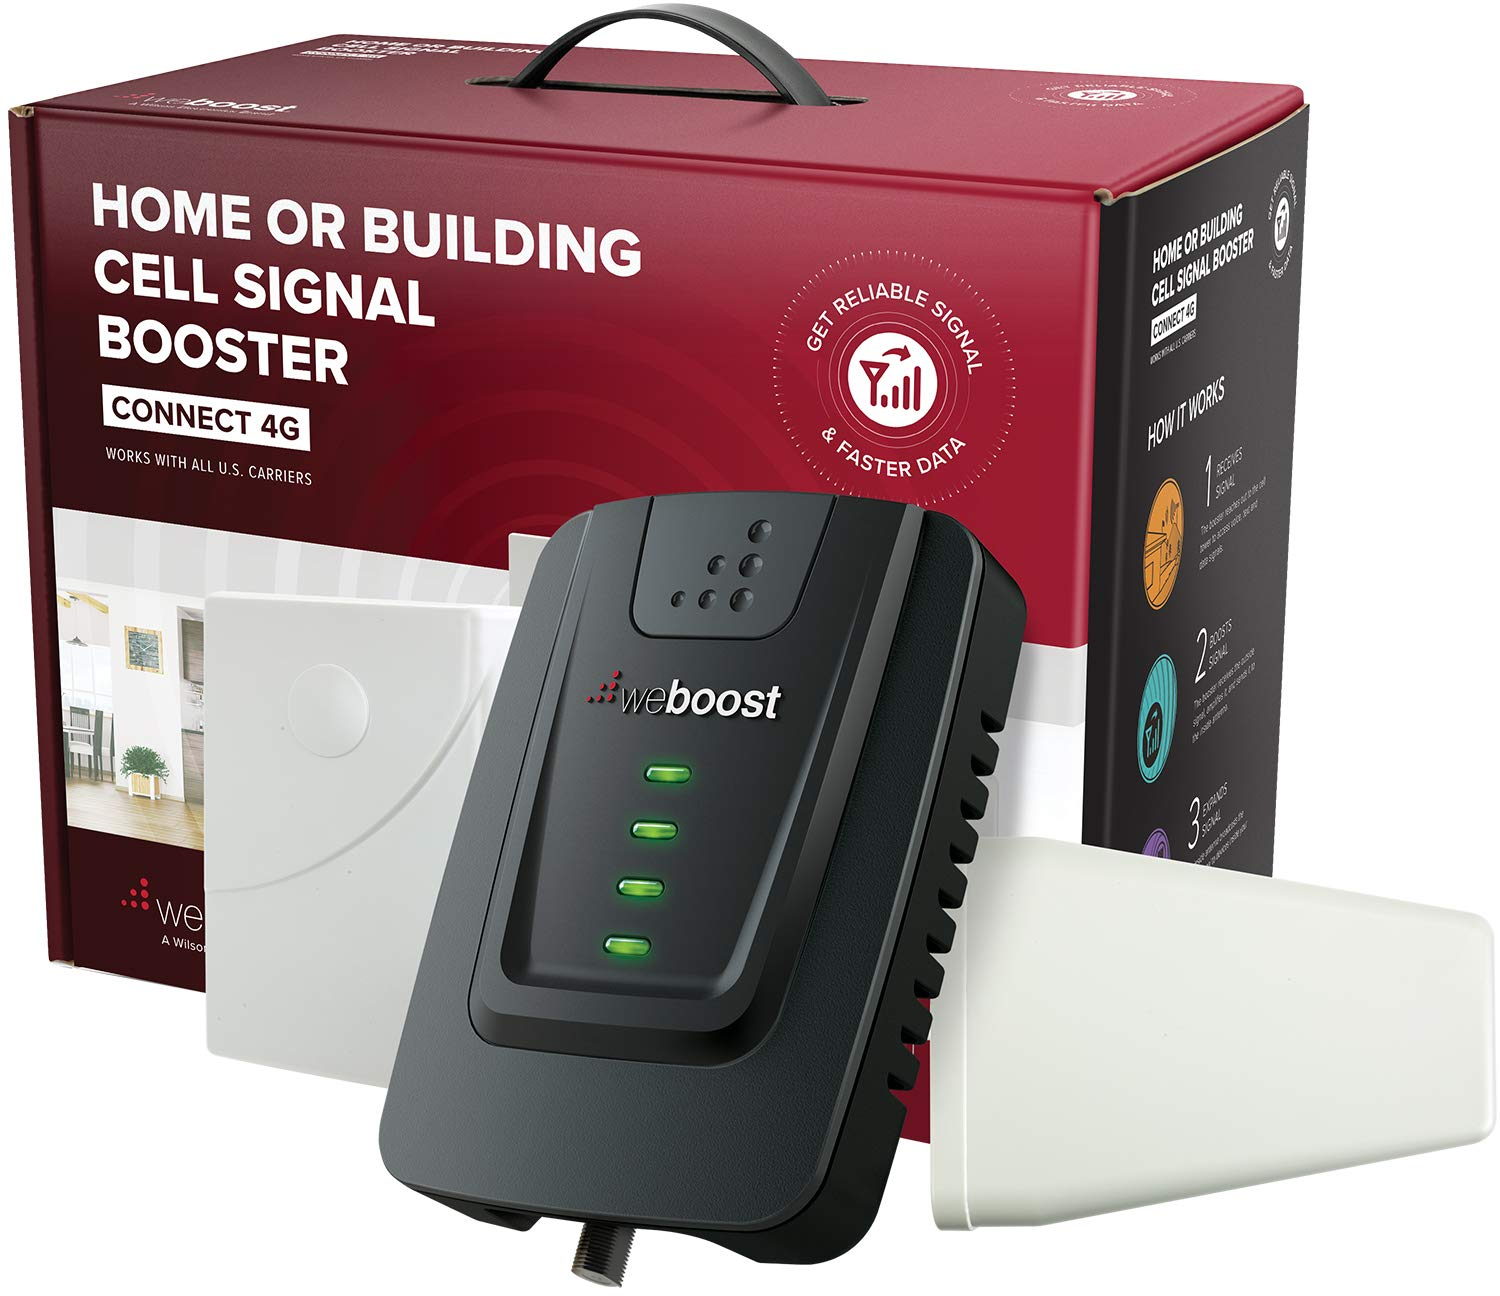 weBoost Connect 4G (470103) Indoor Cell Phone Signal Booster for Home and Office - Verizon, AT&T, T-Mobile, Sprint - Supports 5,000 Square Foot Area by weBoost